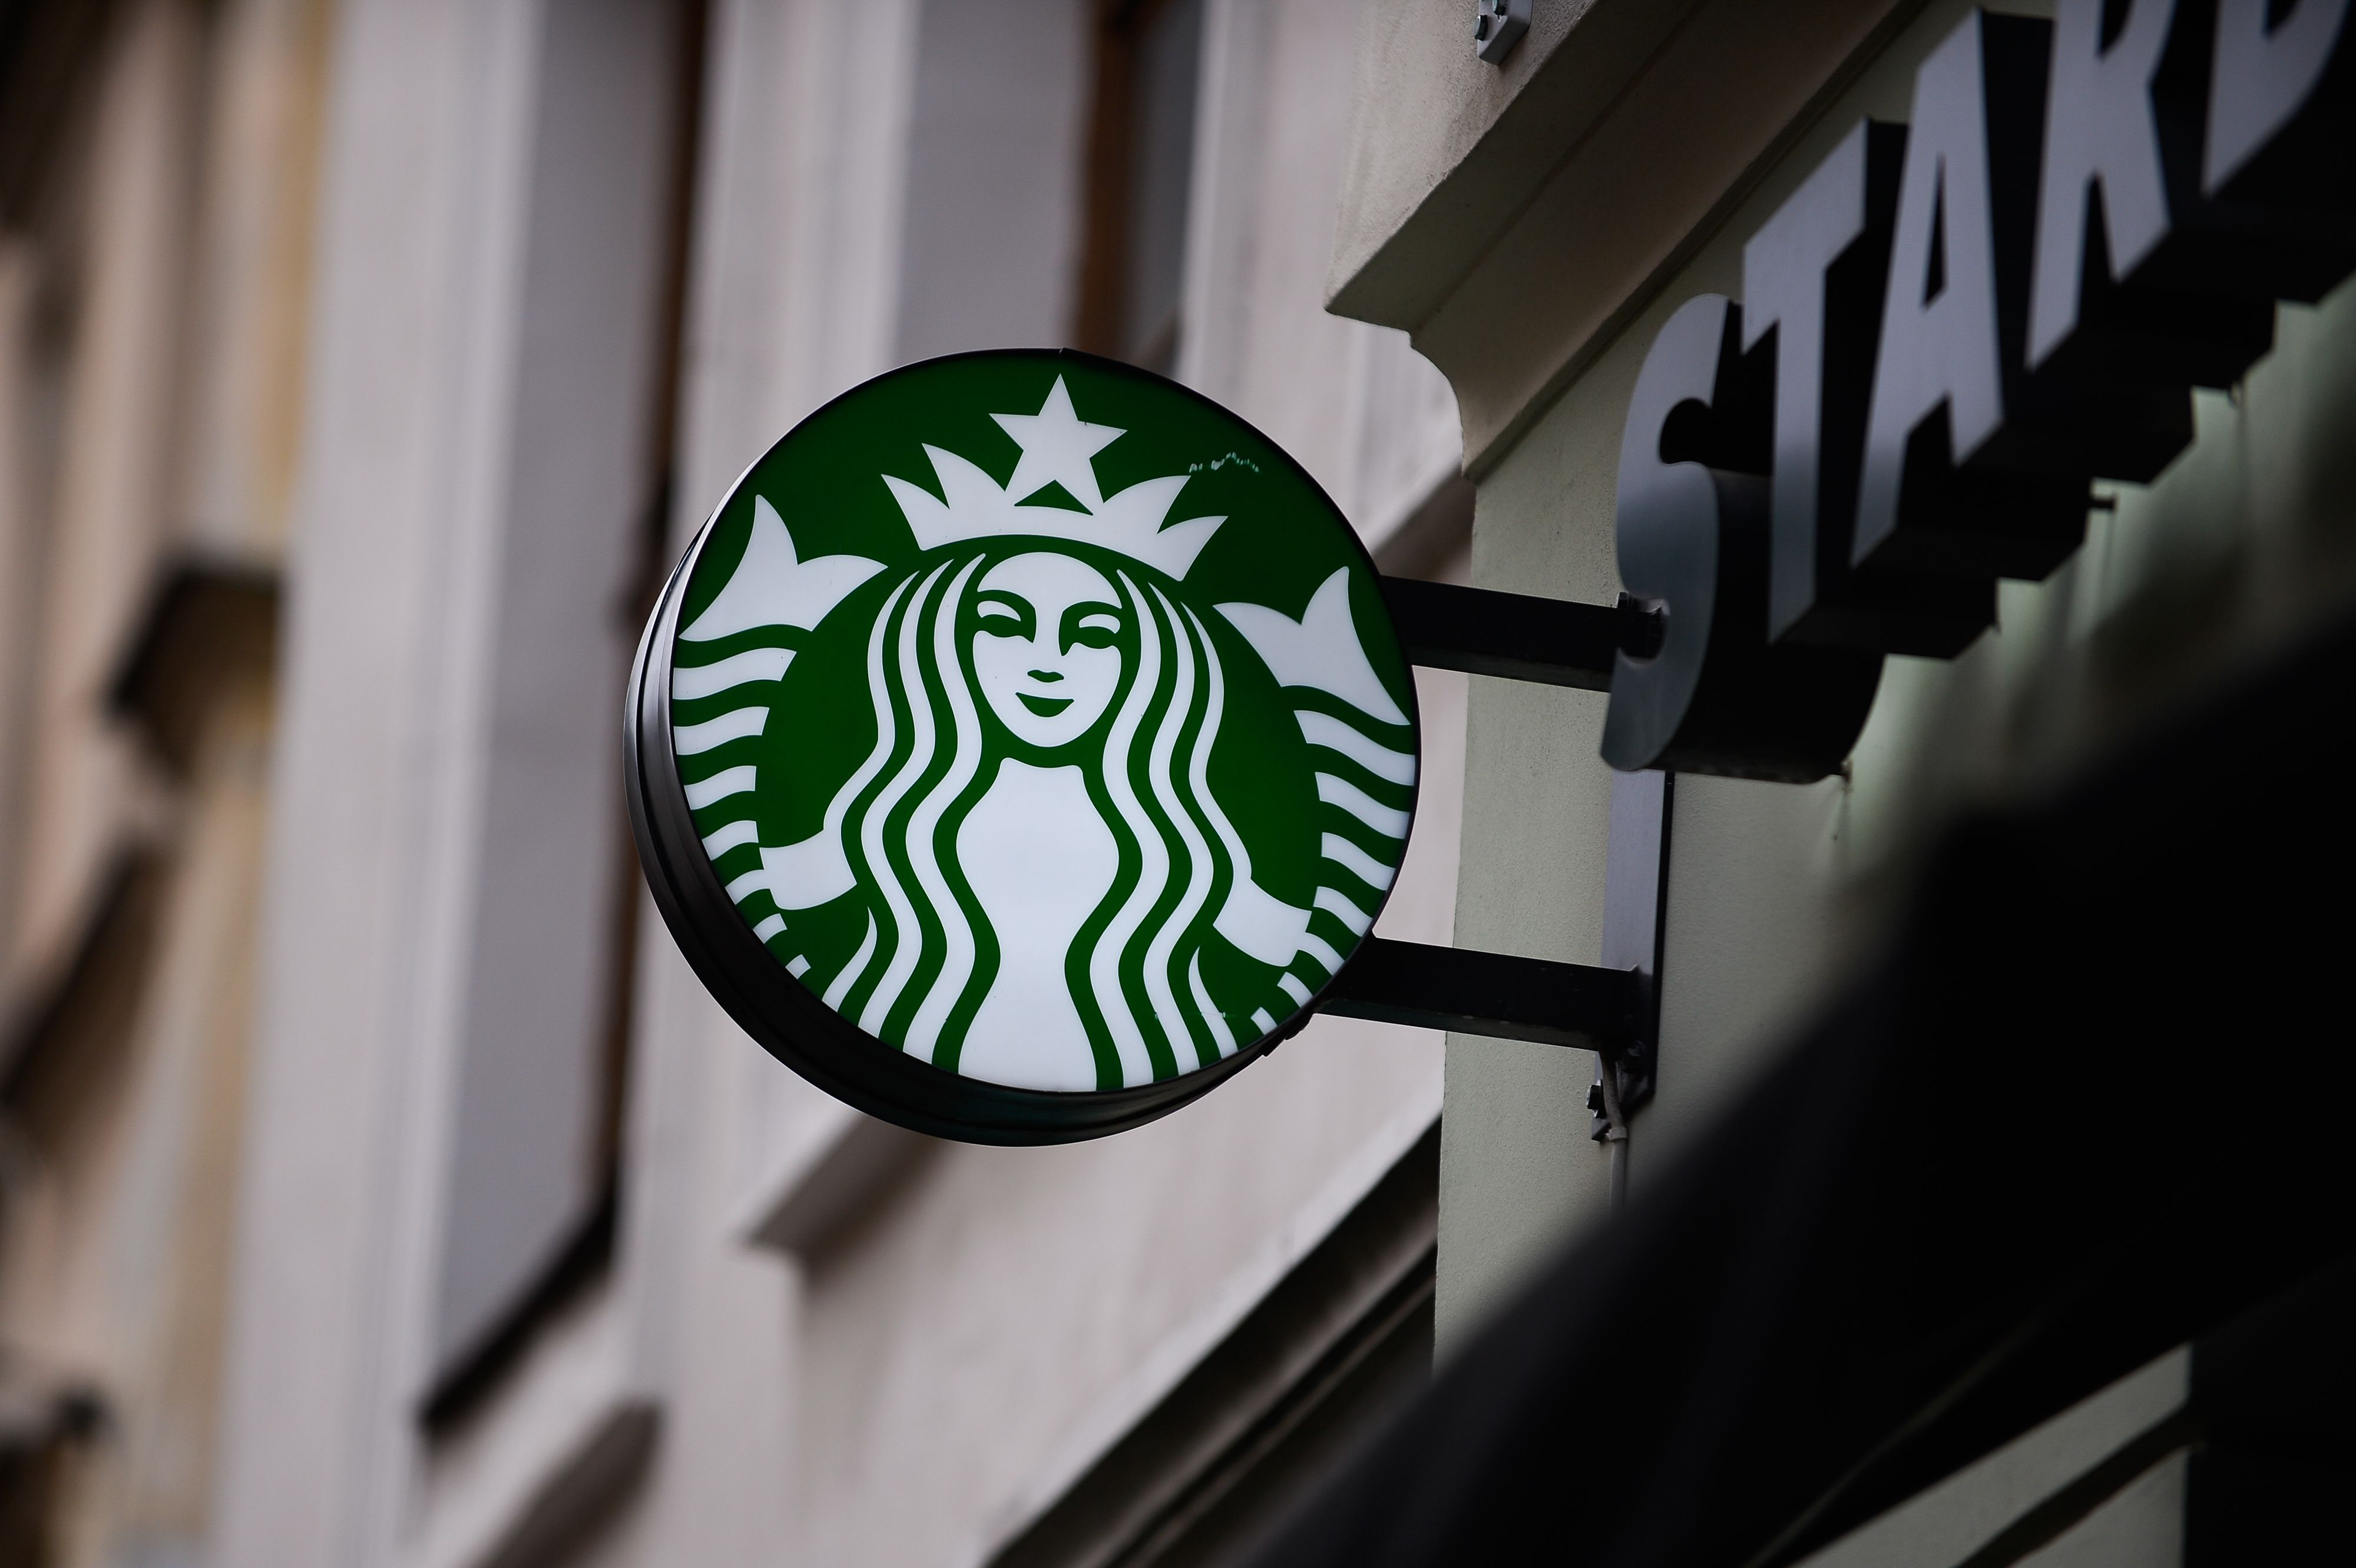 Starbucks Is Being Sued By A Customer With A Nut Allergy Who Was Served Coffee With Almond Milk